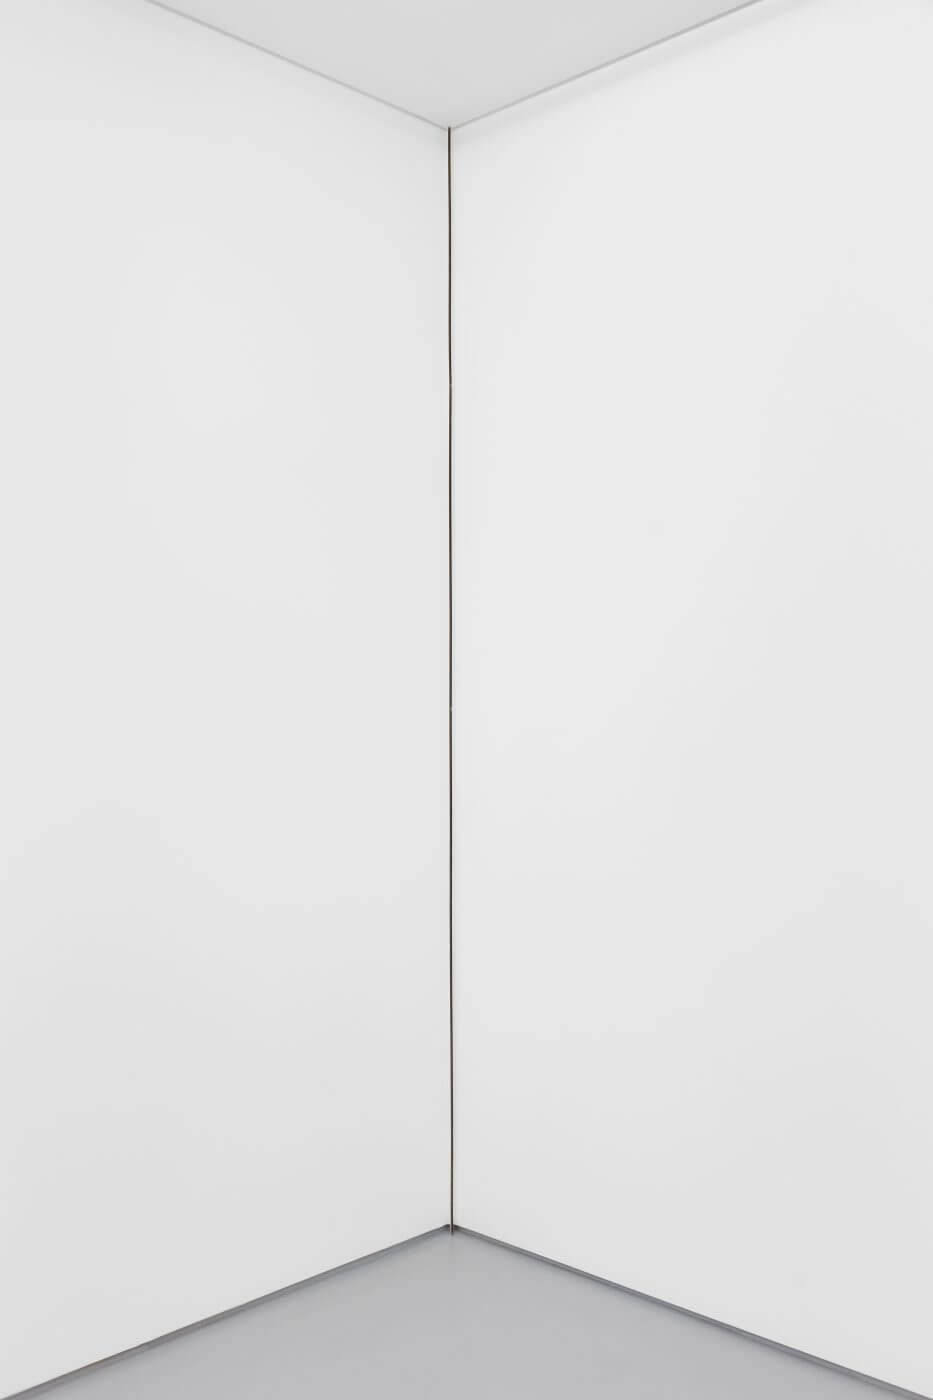 Carlos Bunga, Linha (vertical), 2017 (2021). Latex and glue on carboard and wall. 286,5 x 0,8 x 3 cm